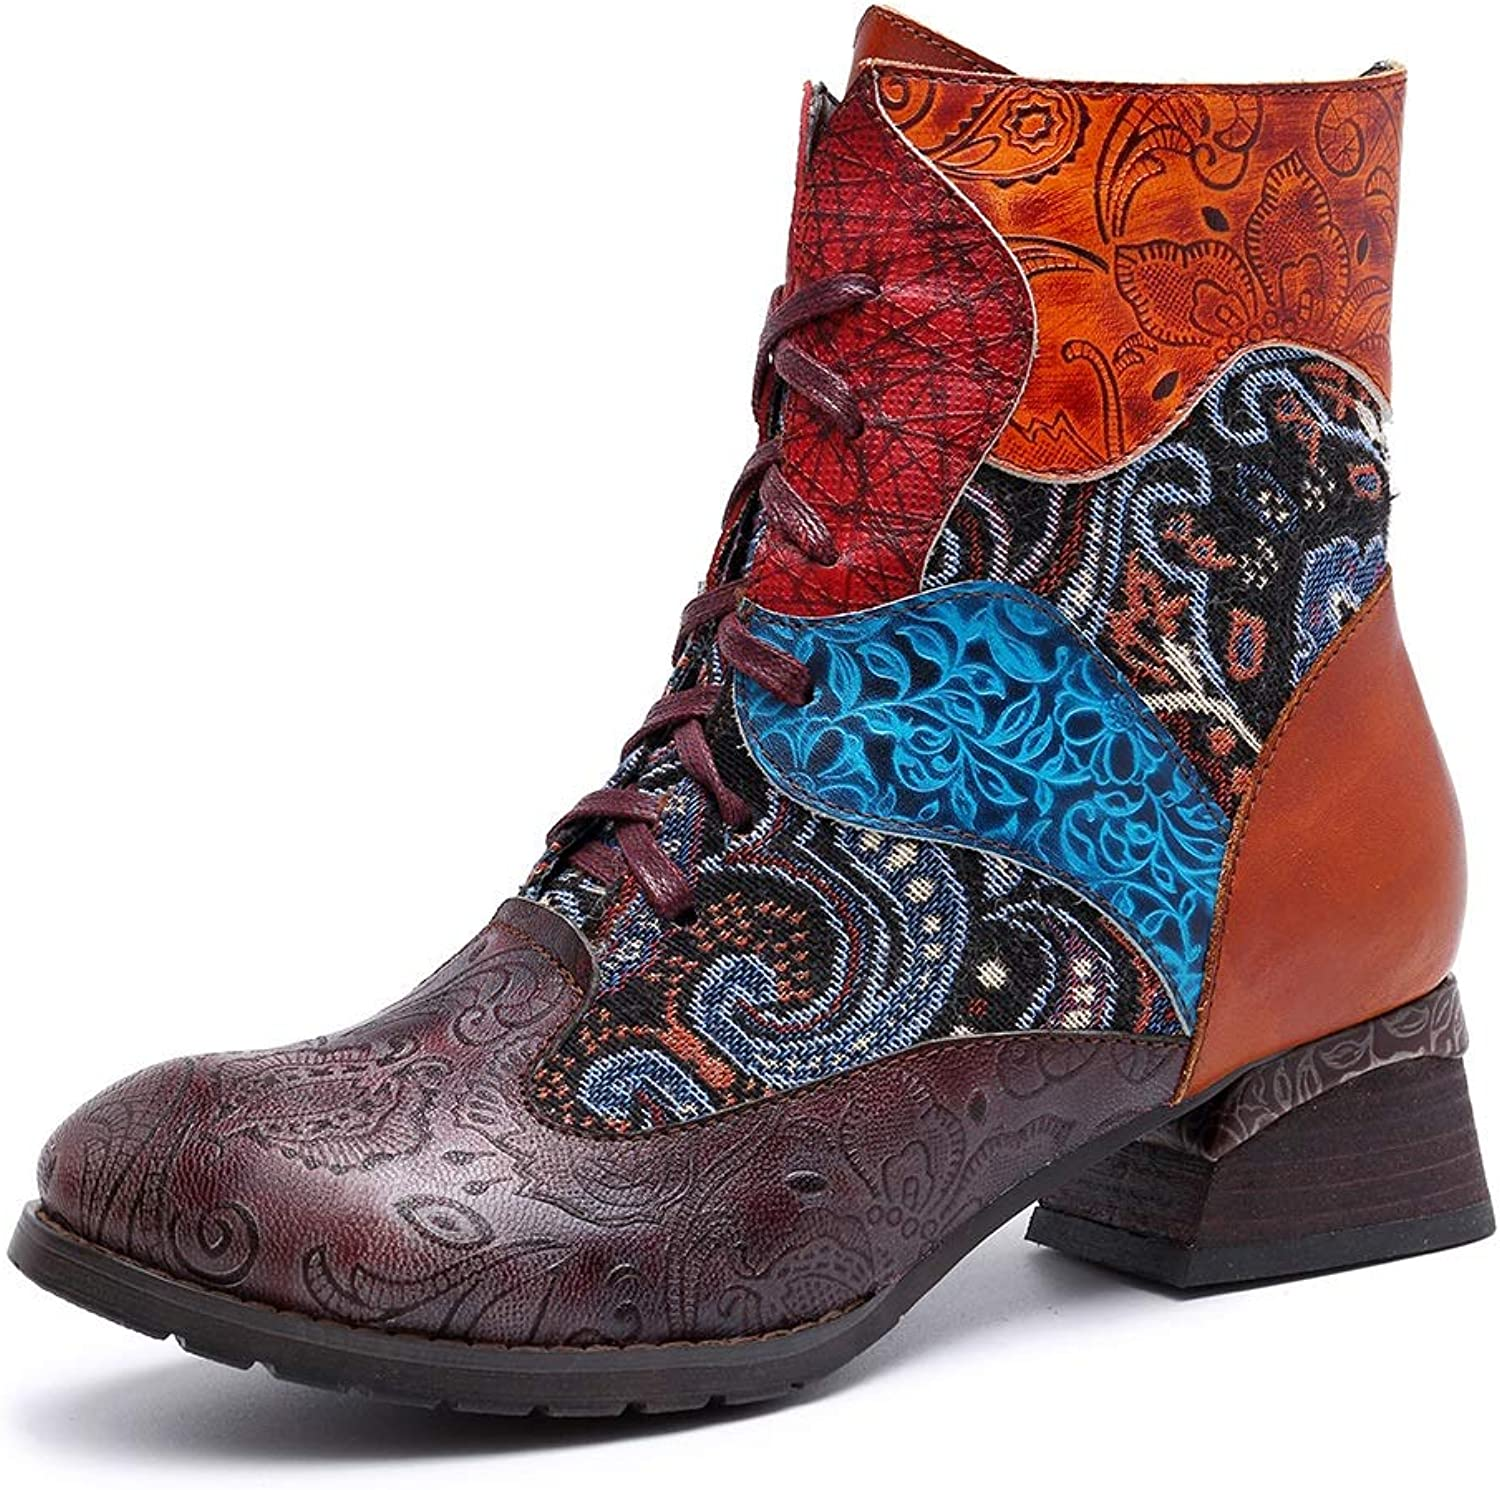 Women's Leather color Leather Printed Jacquard and Women's Boots Cowboy Boots (color   Red, Size   7US)